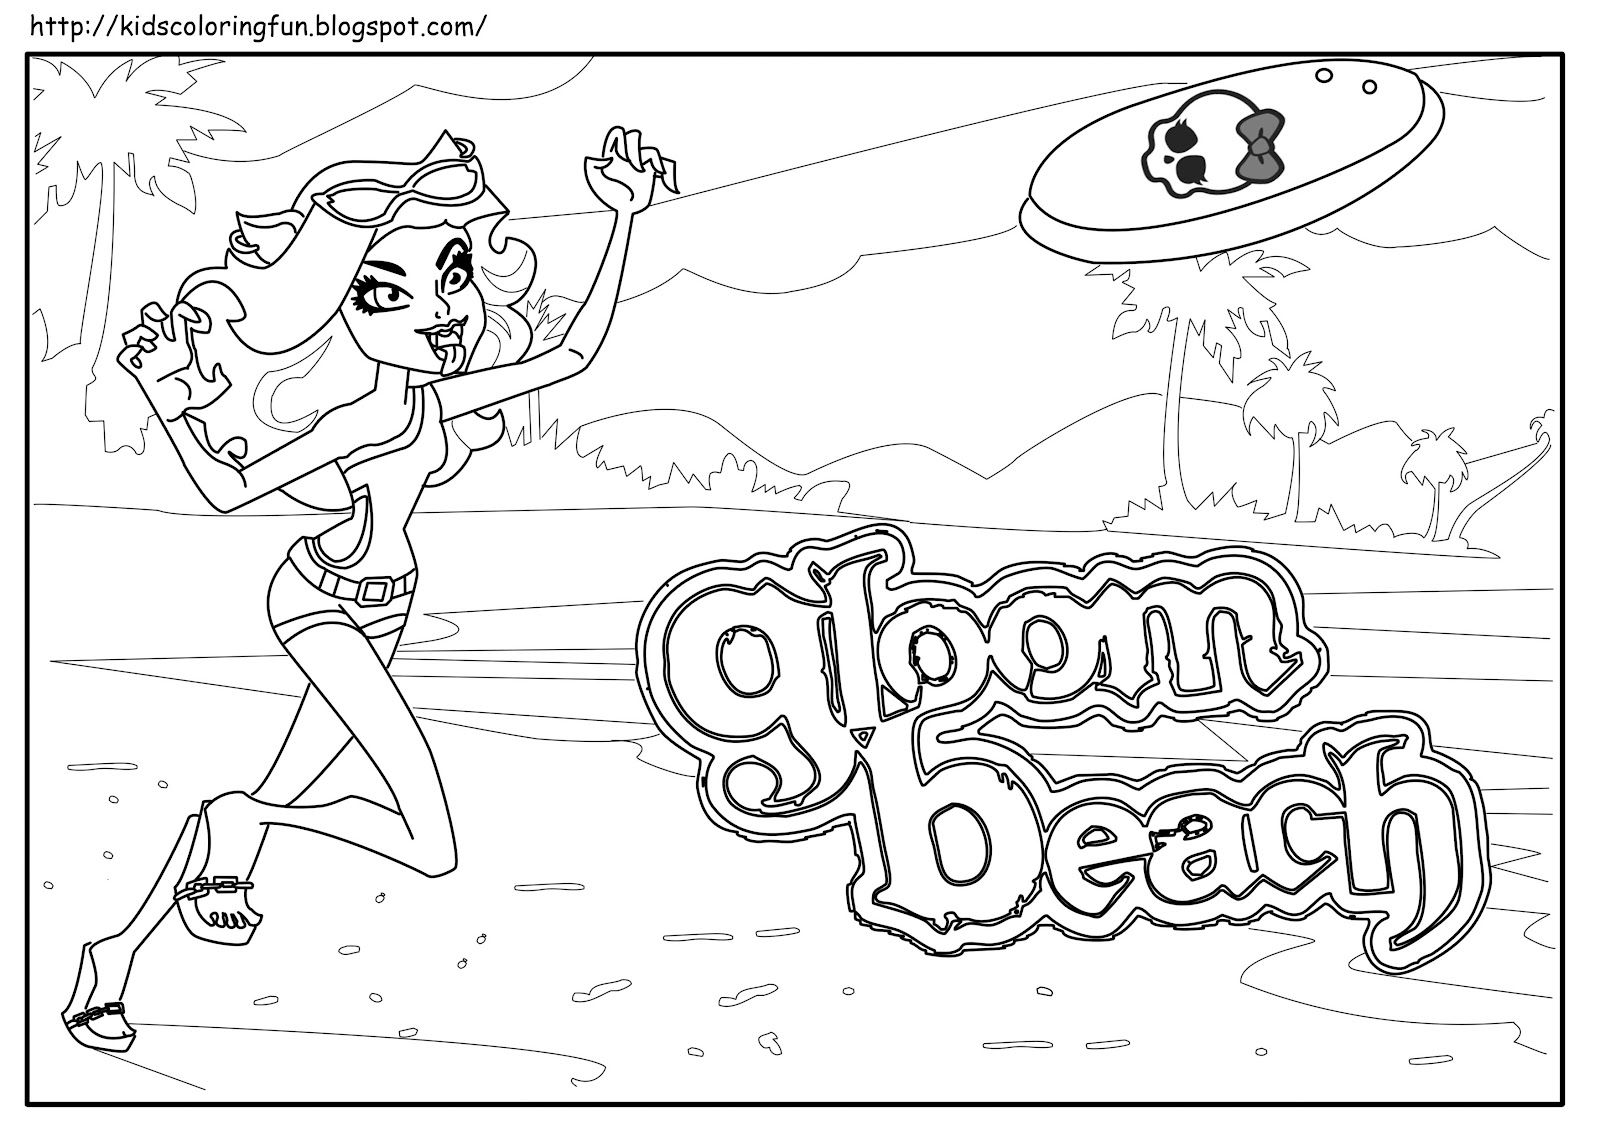 monster high coloring pages jinafire long gloom | Monster High Clawdeen Wolf